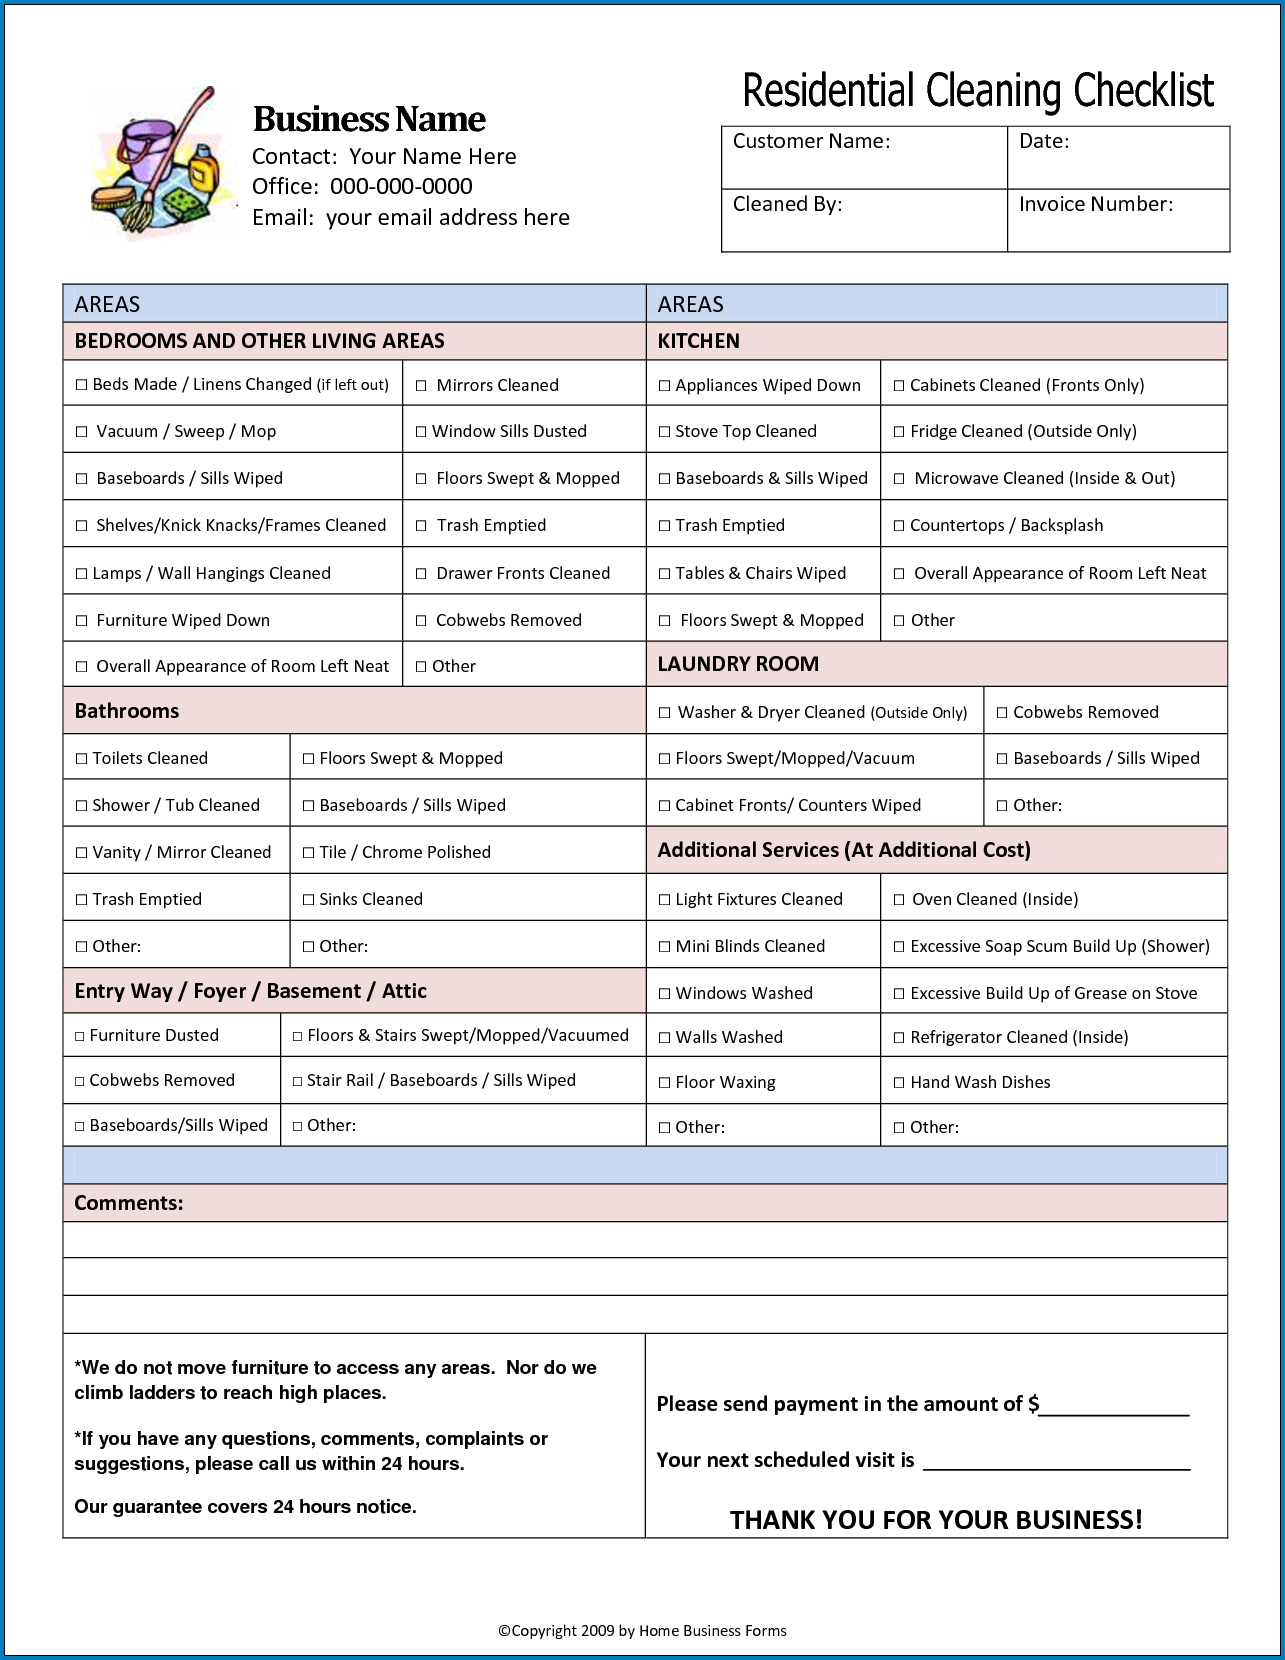 Medical Office Cleaning Checklist Template Sample